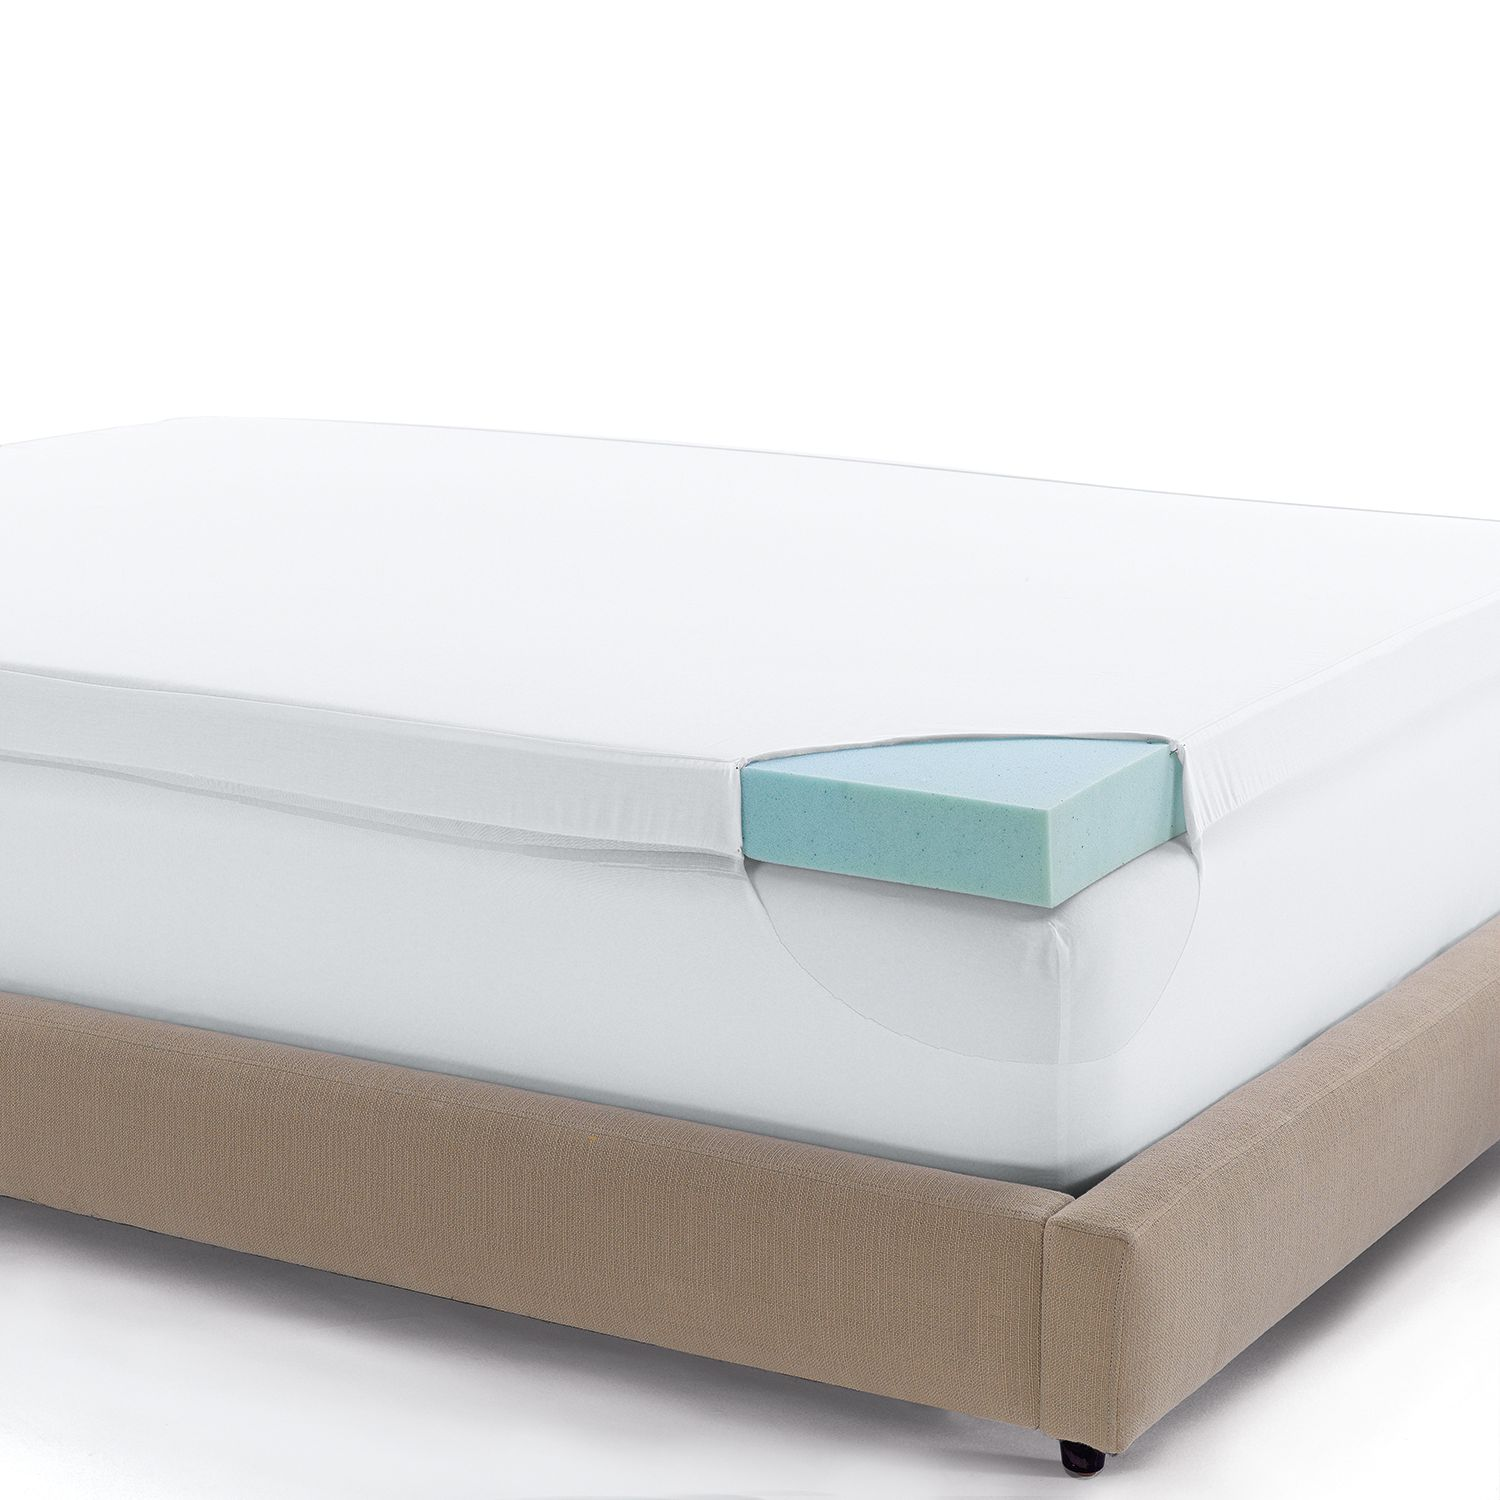 pad mattress euro pillow firm queen posturepedic set p top password sealy